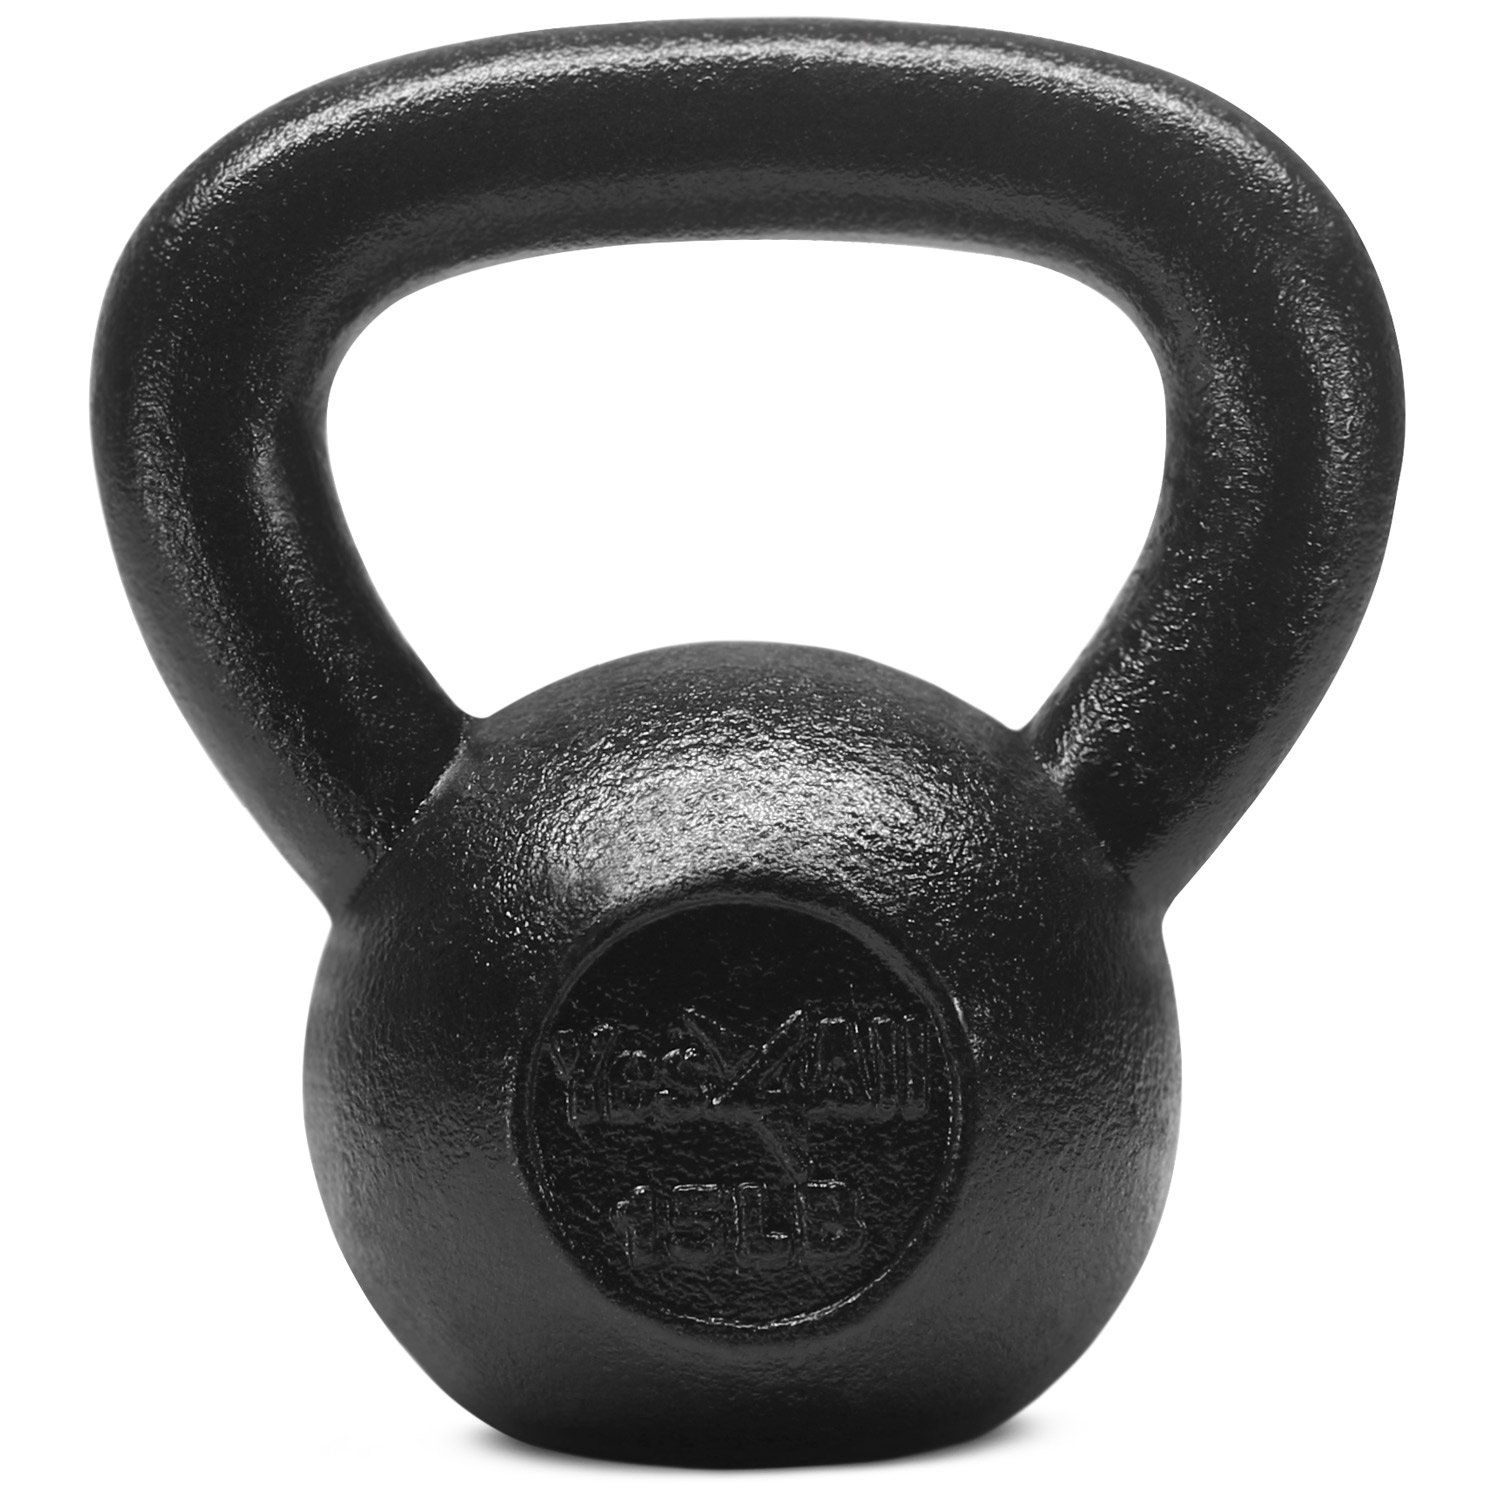 Yes4All  Combo Cast Iron Kettlebell Weight Sets – Great for Full Body Workout and Strength Training – Kettlebells 5 10 15 lbs (Black) by Yes4All (Image #4)